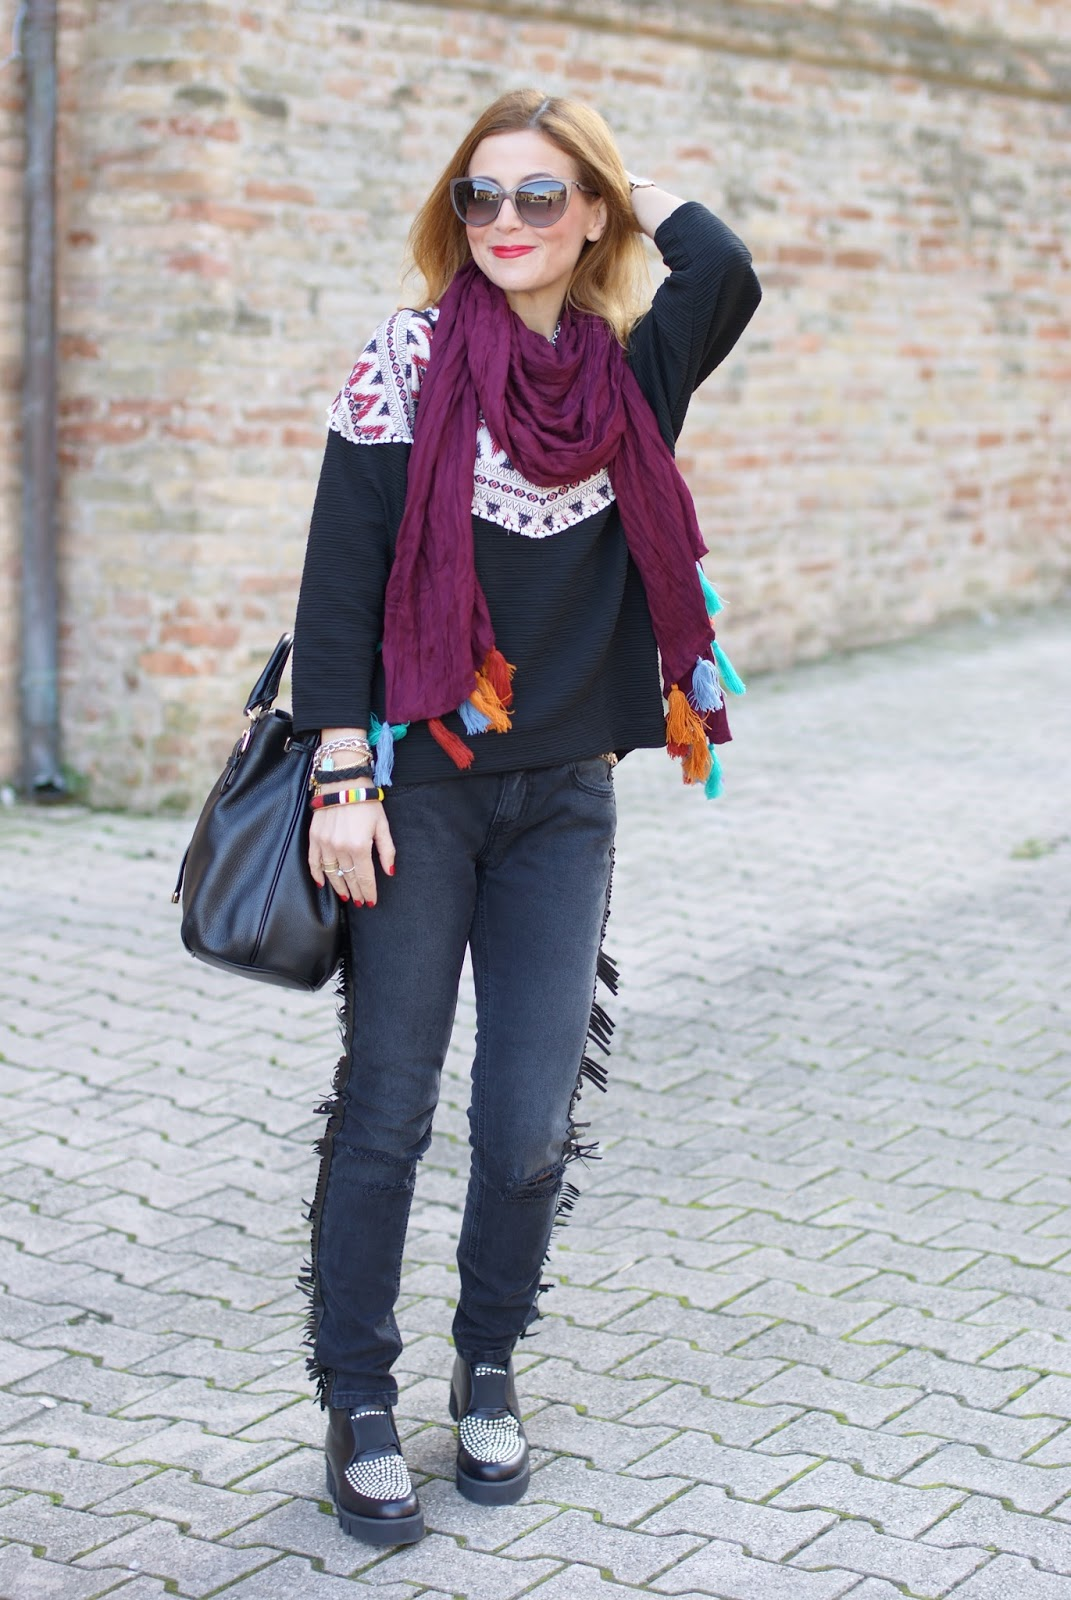 25a1527c37 Fringed jeans and tassel scarf: ethnic chic outfit | Fashion and ...